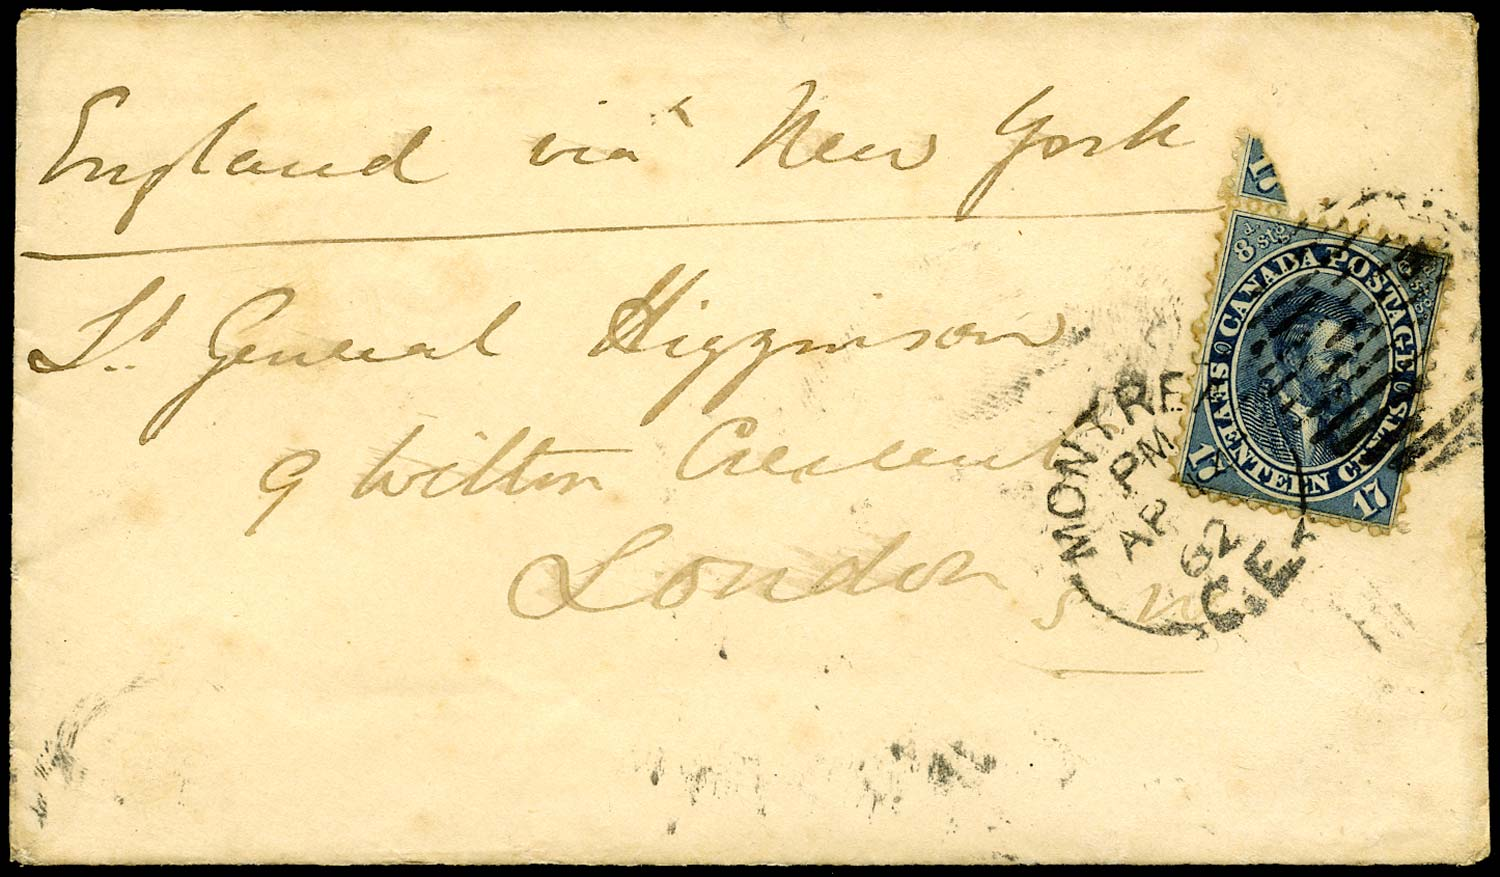 CANADA 1862  SG42 Cover from Montreal to England at 17c rate